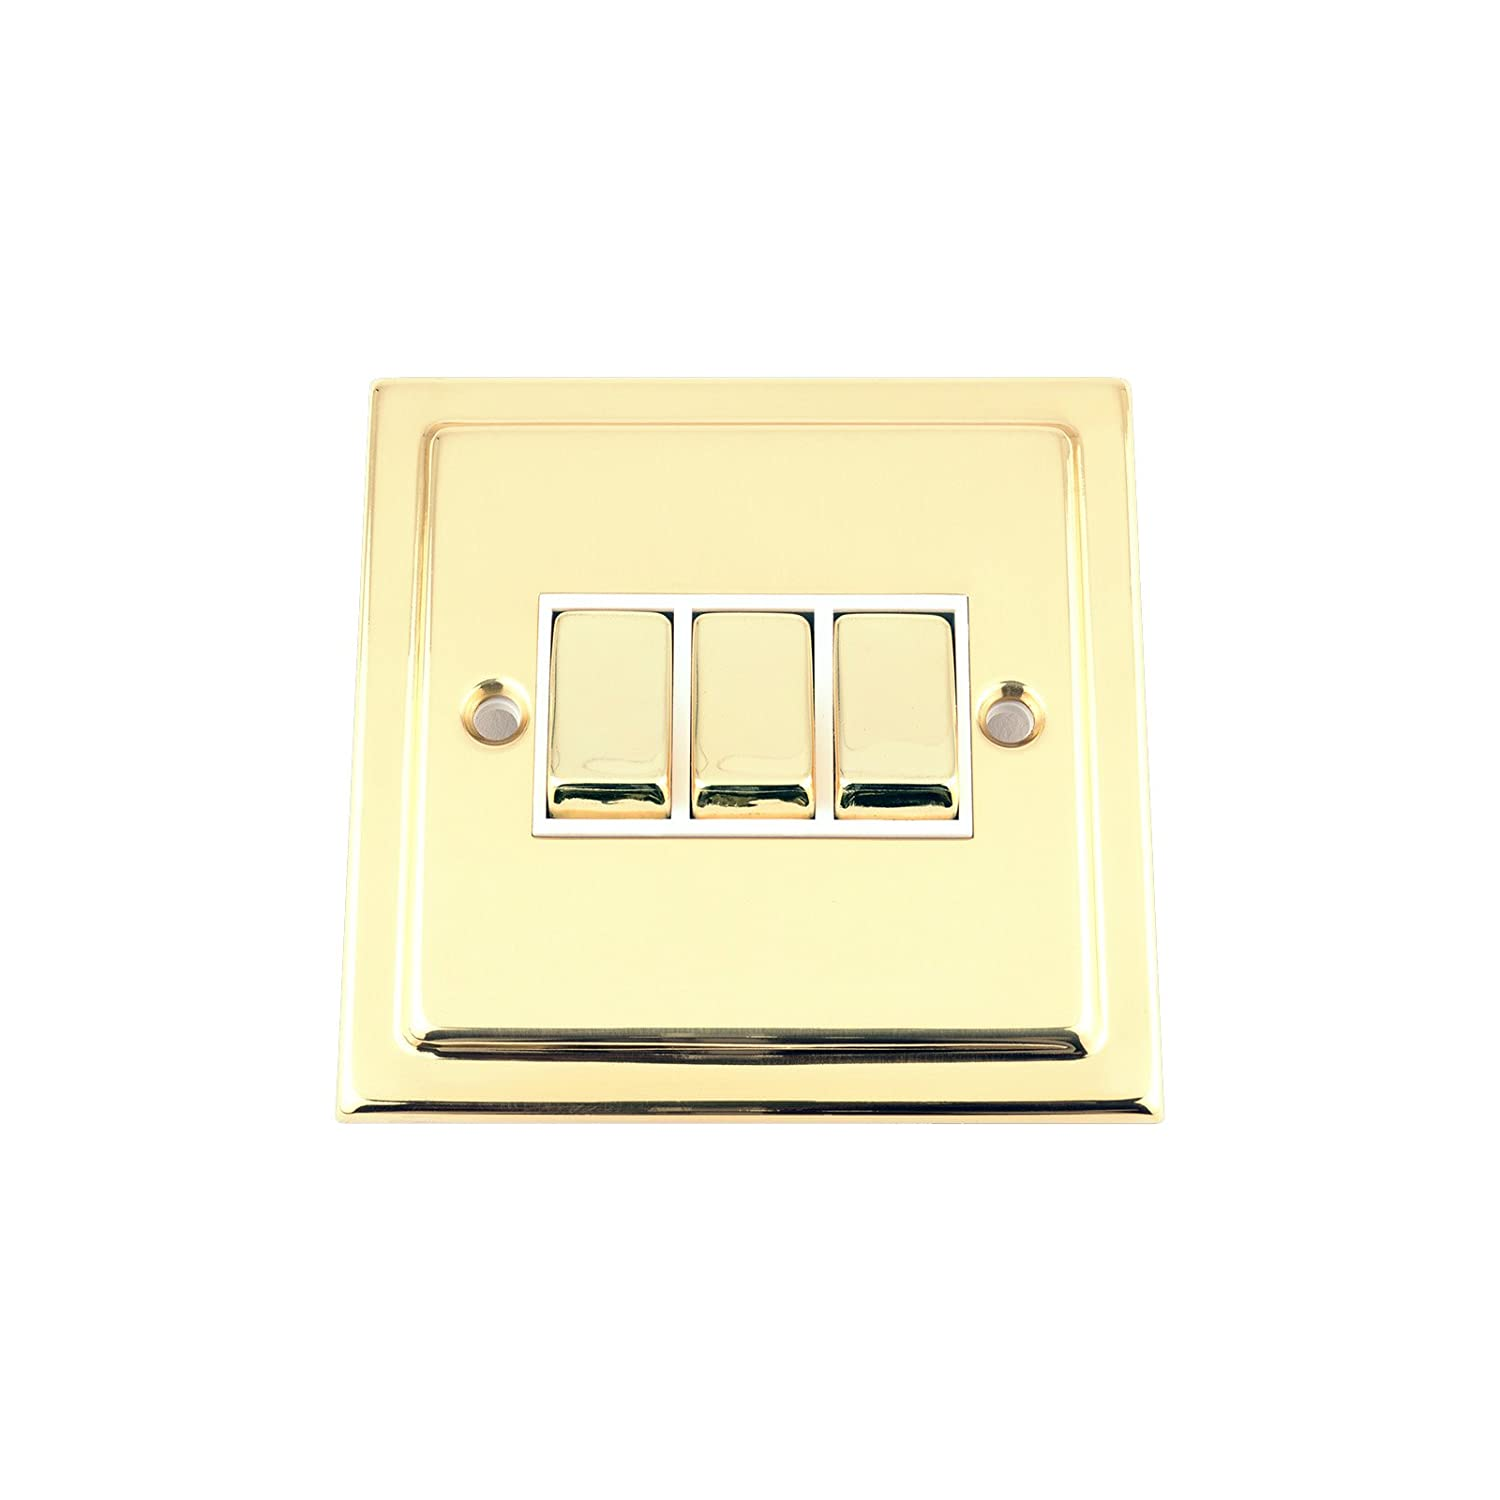 Light Switch Triple 3 Gang - Victorian Polished Brass - White Insert - Metal Rocker Switch - 10 Amp 3 Gang 2 Way